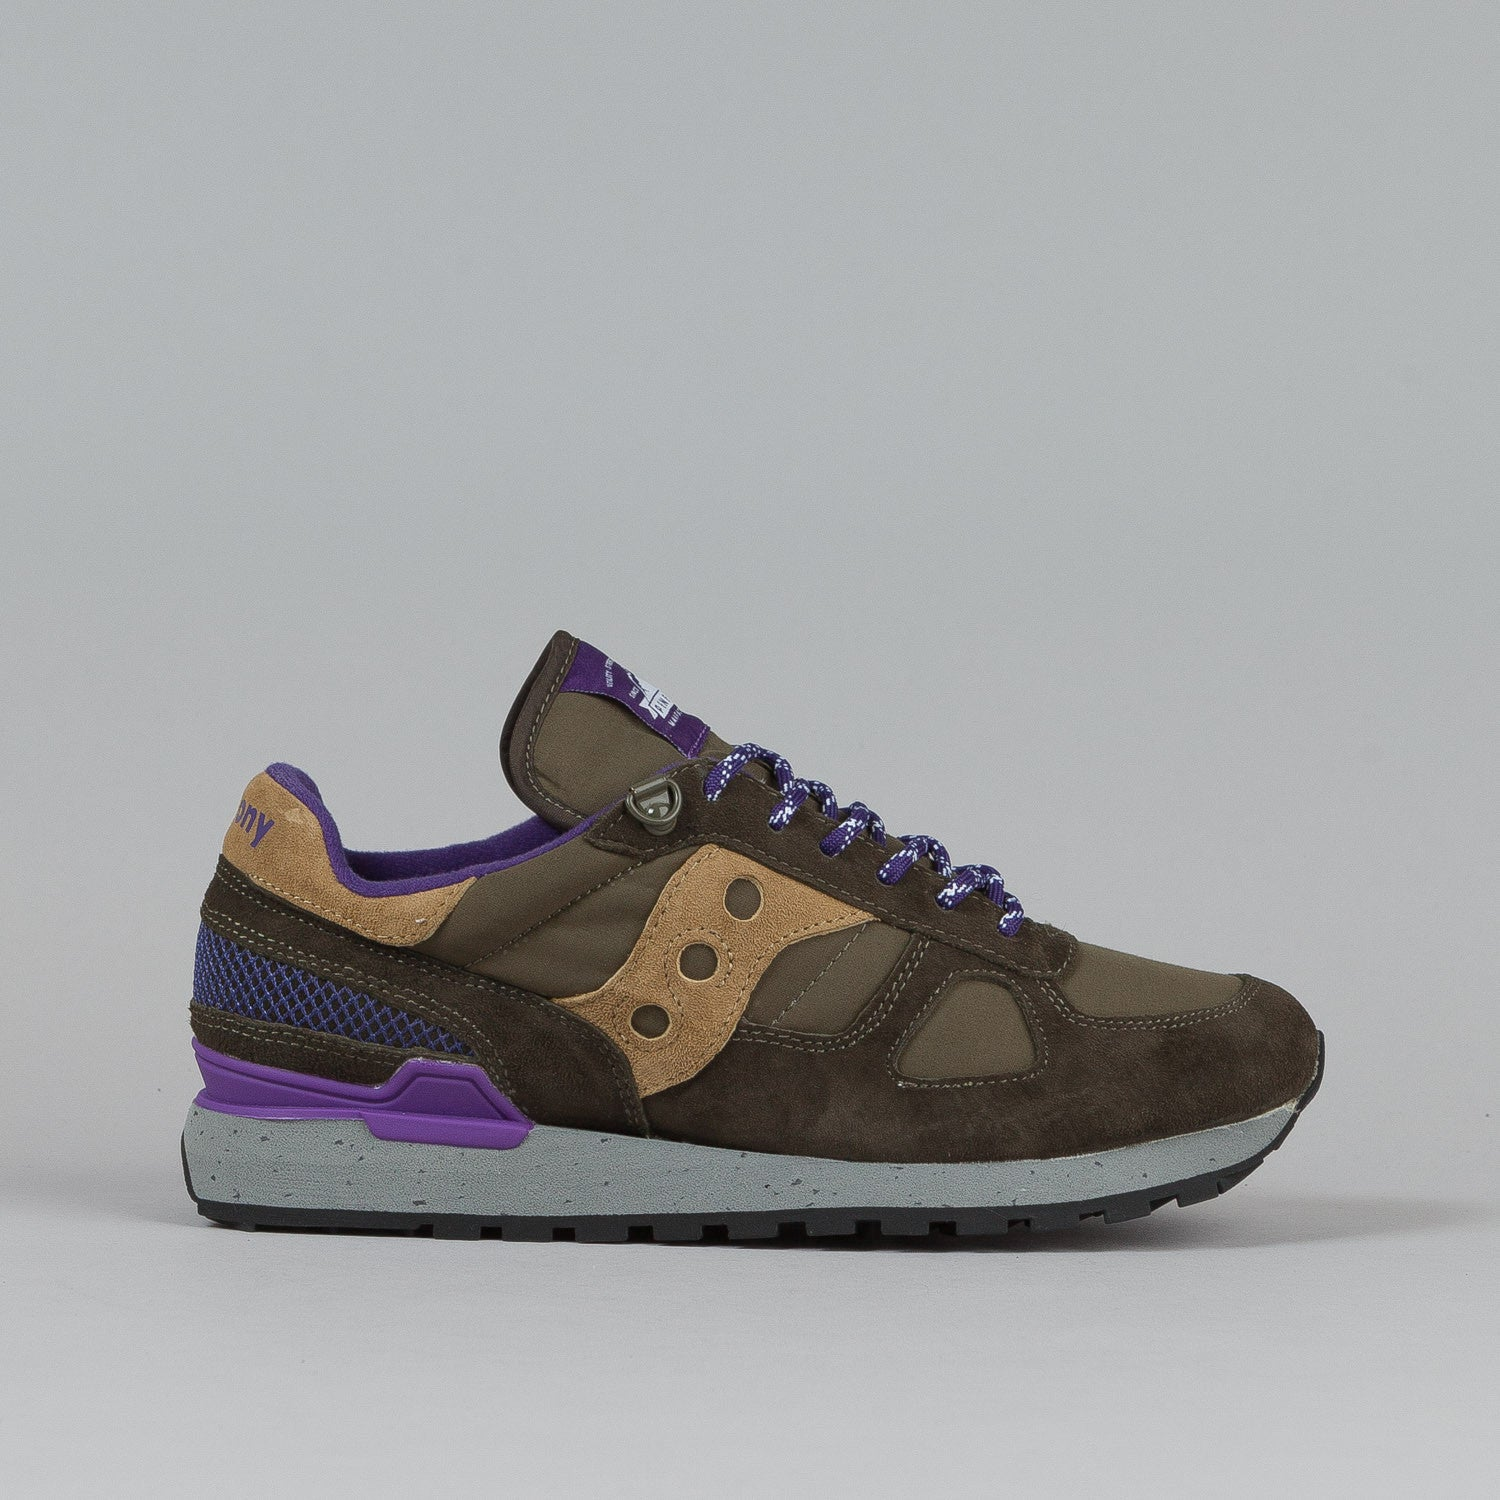 Saucony X Penfield Shadow Original Shoes Olive / Purple